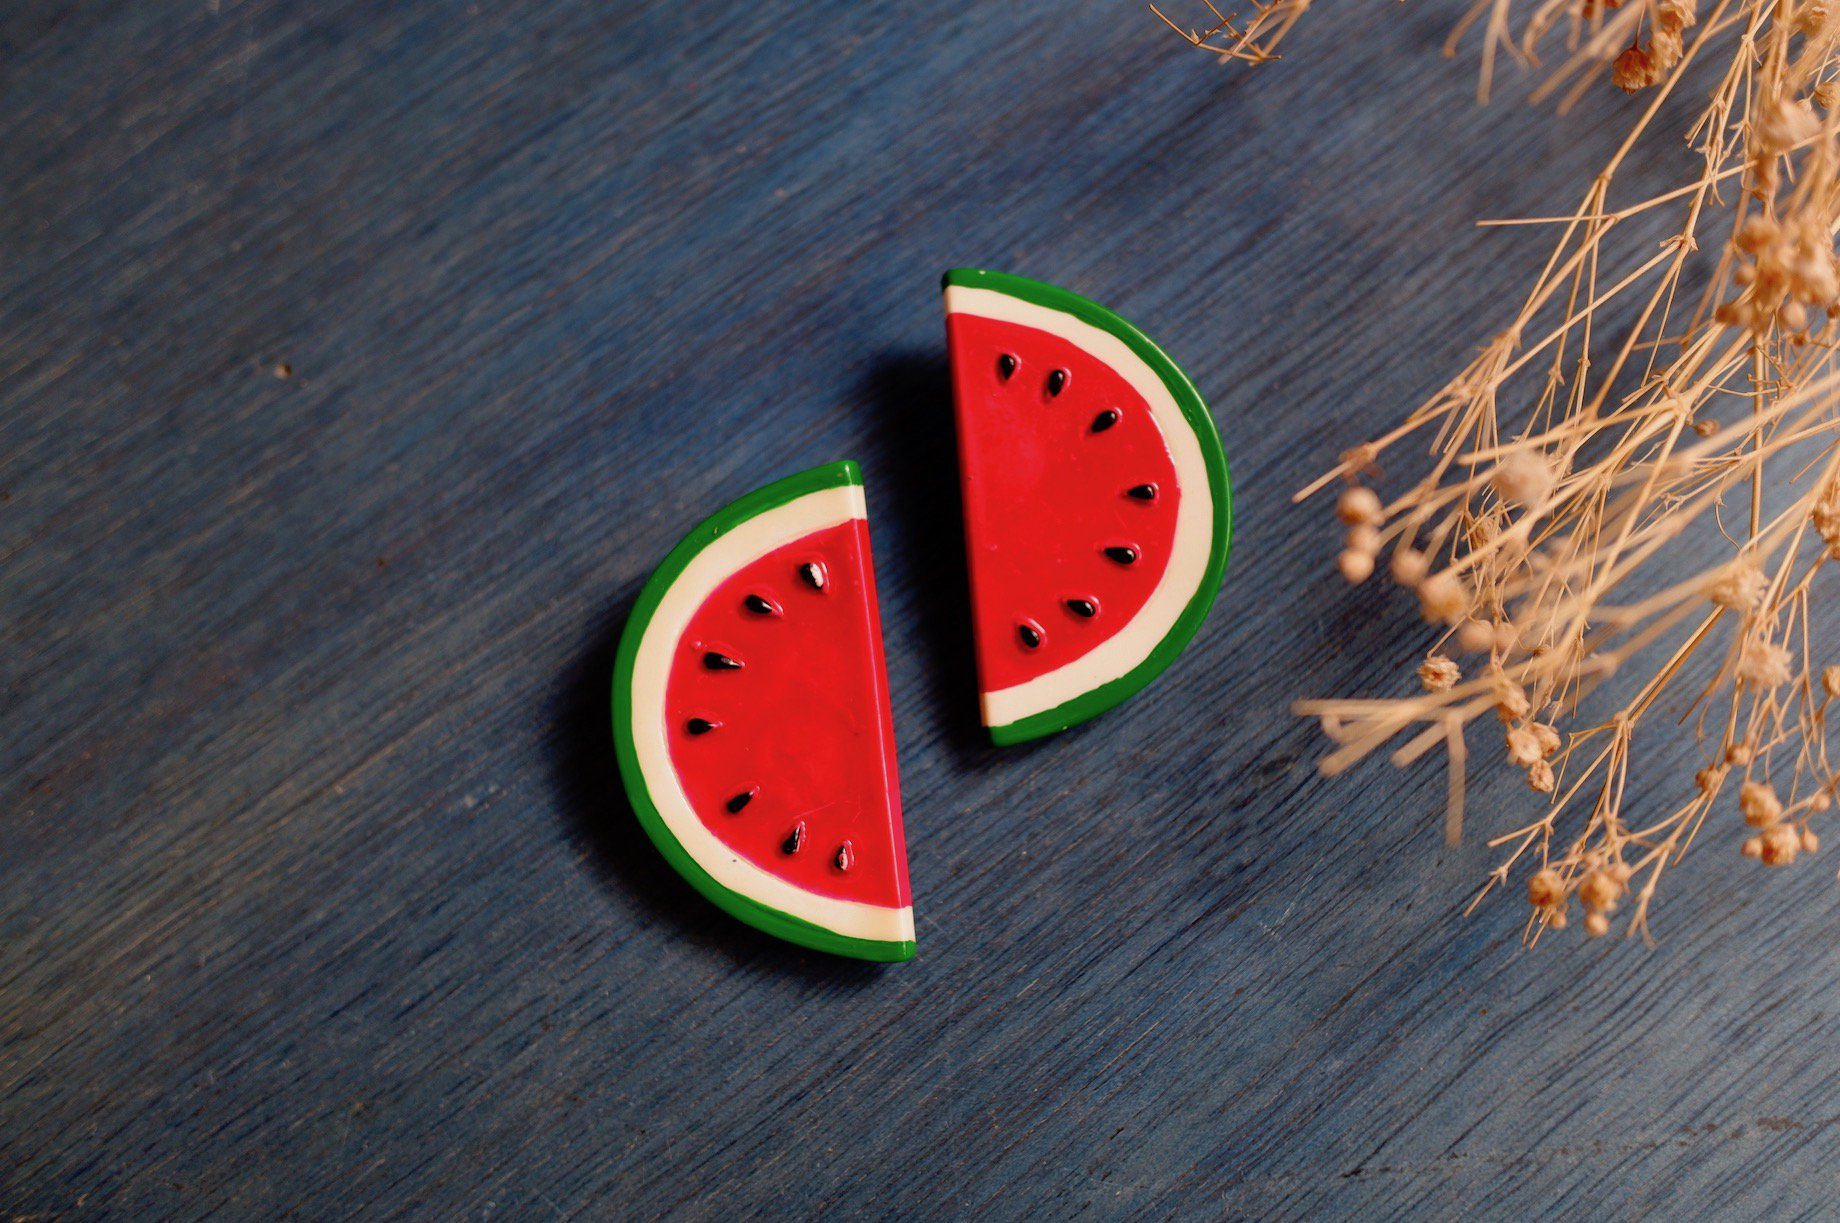 <img class='new_mark_img1' src='//img.shop-pro.jp/img/new/icons13.gif' style='border:none;display:inline;margin:0px;padding:0px;width:auto;' />vintage/watermelon split earring